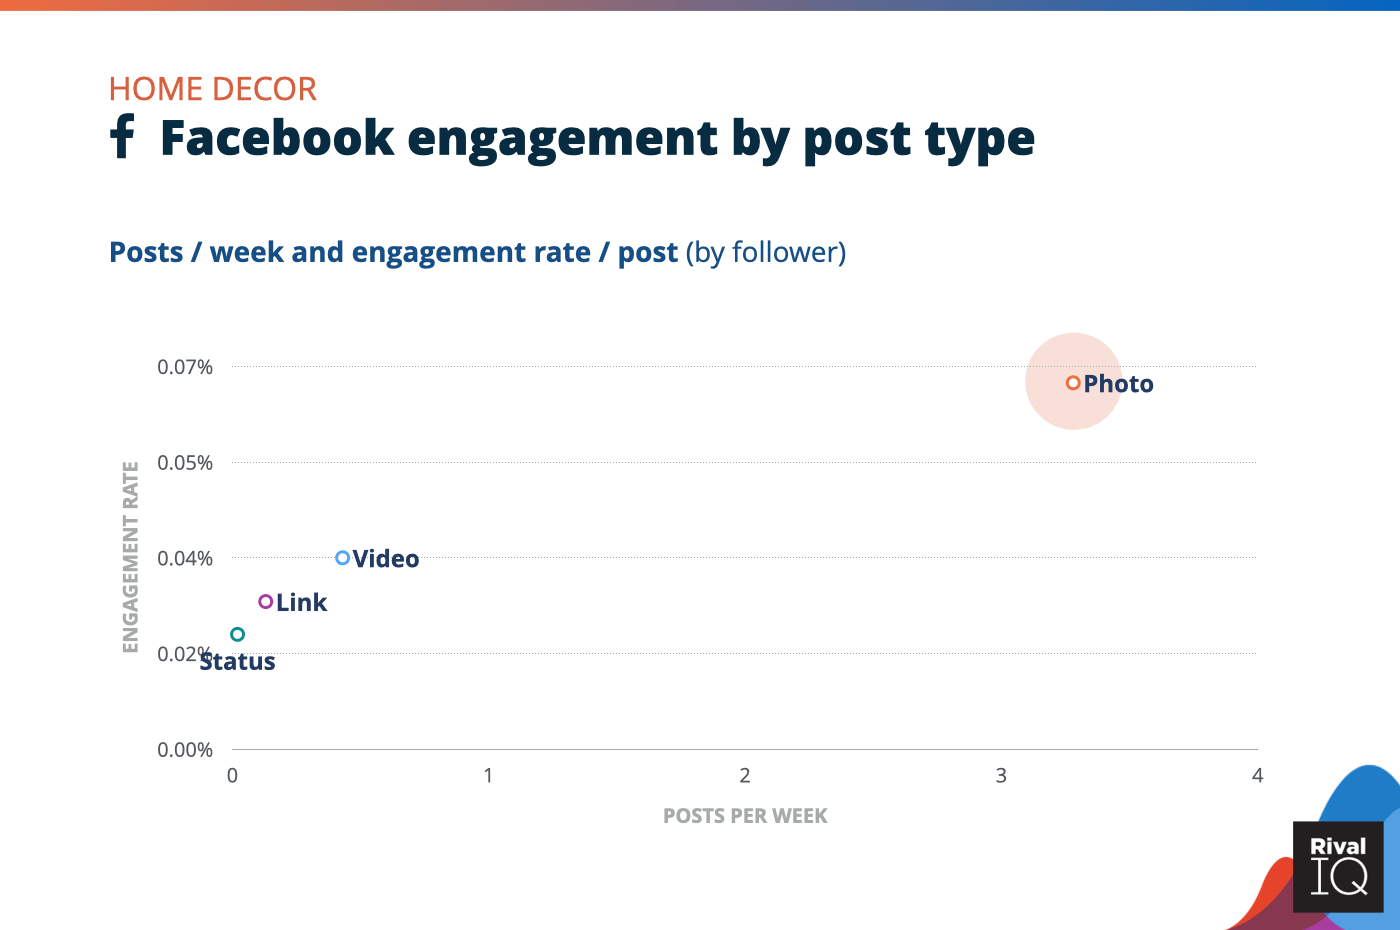 Chart of Facebook posts per week and engagement rate by post type, Home Decor